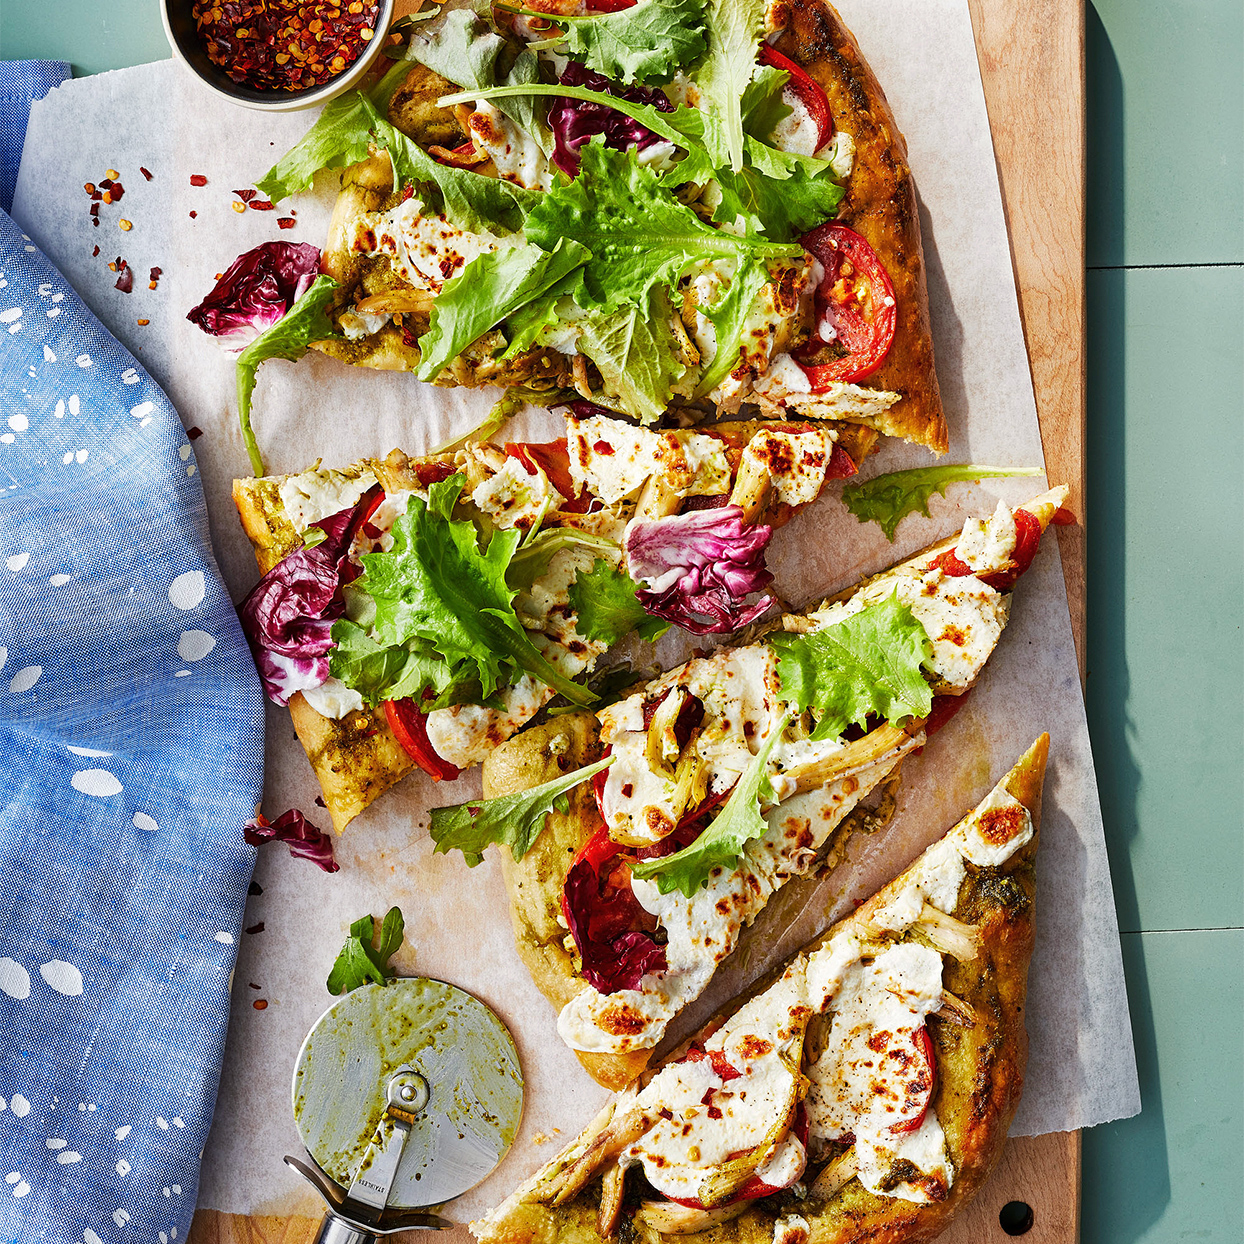 Garlicky Chicken Pizza on cutting board with pizza cutter